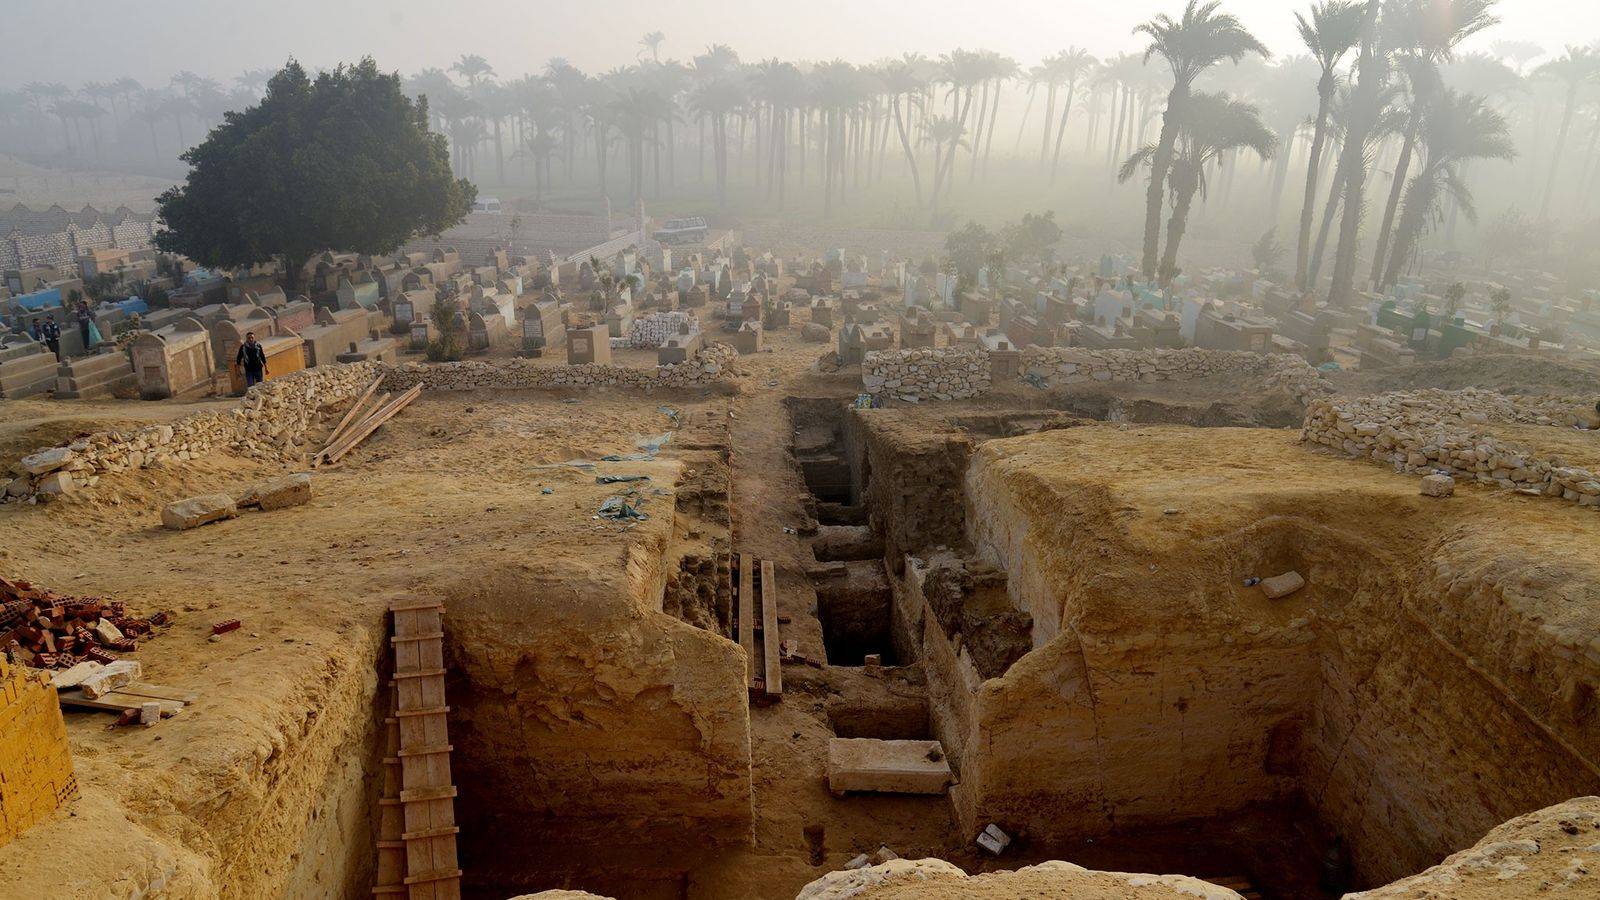 The large collection of ancient burials at Lisht in Egypt could offer insights into life and ...